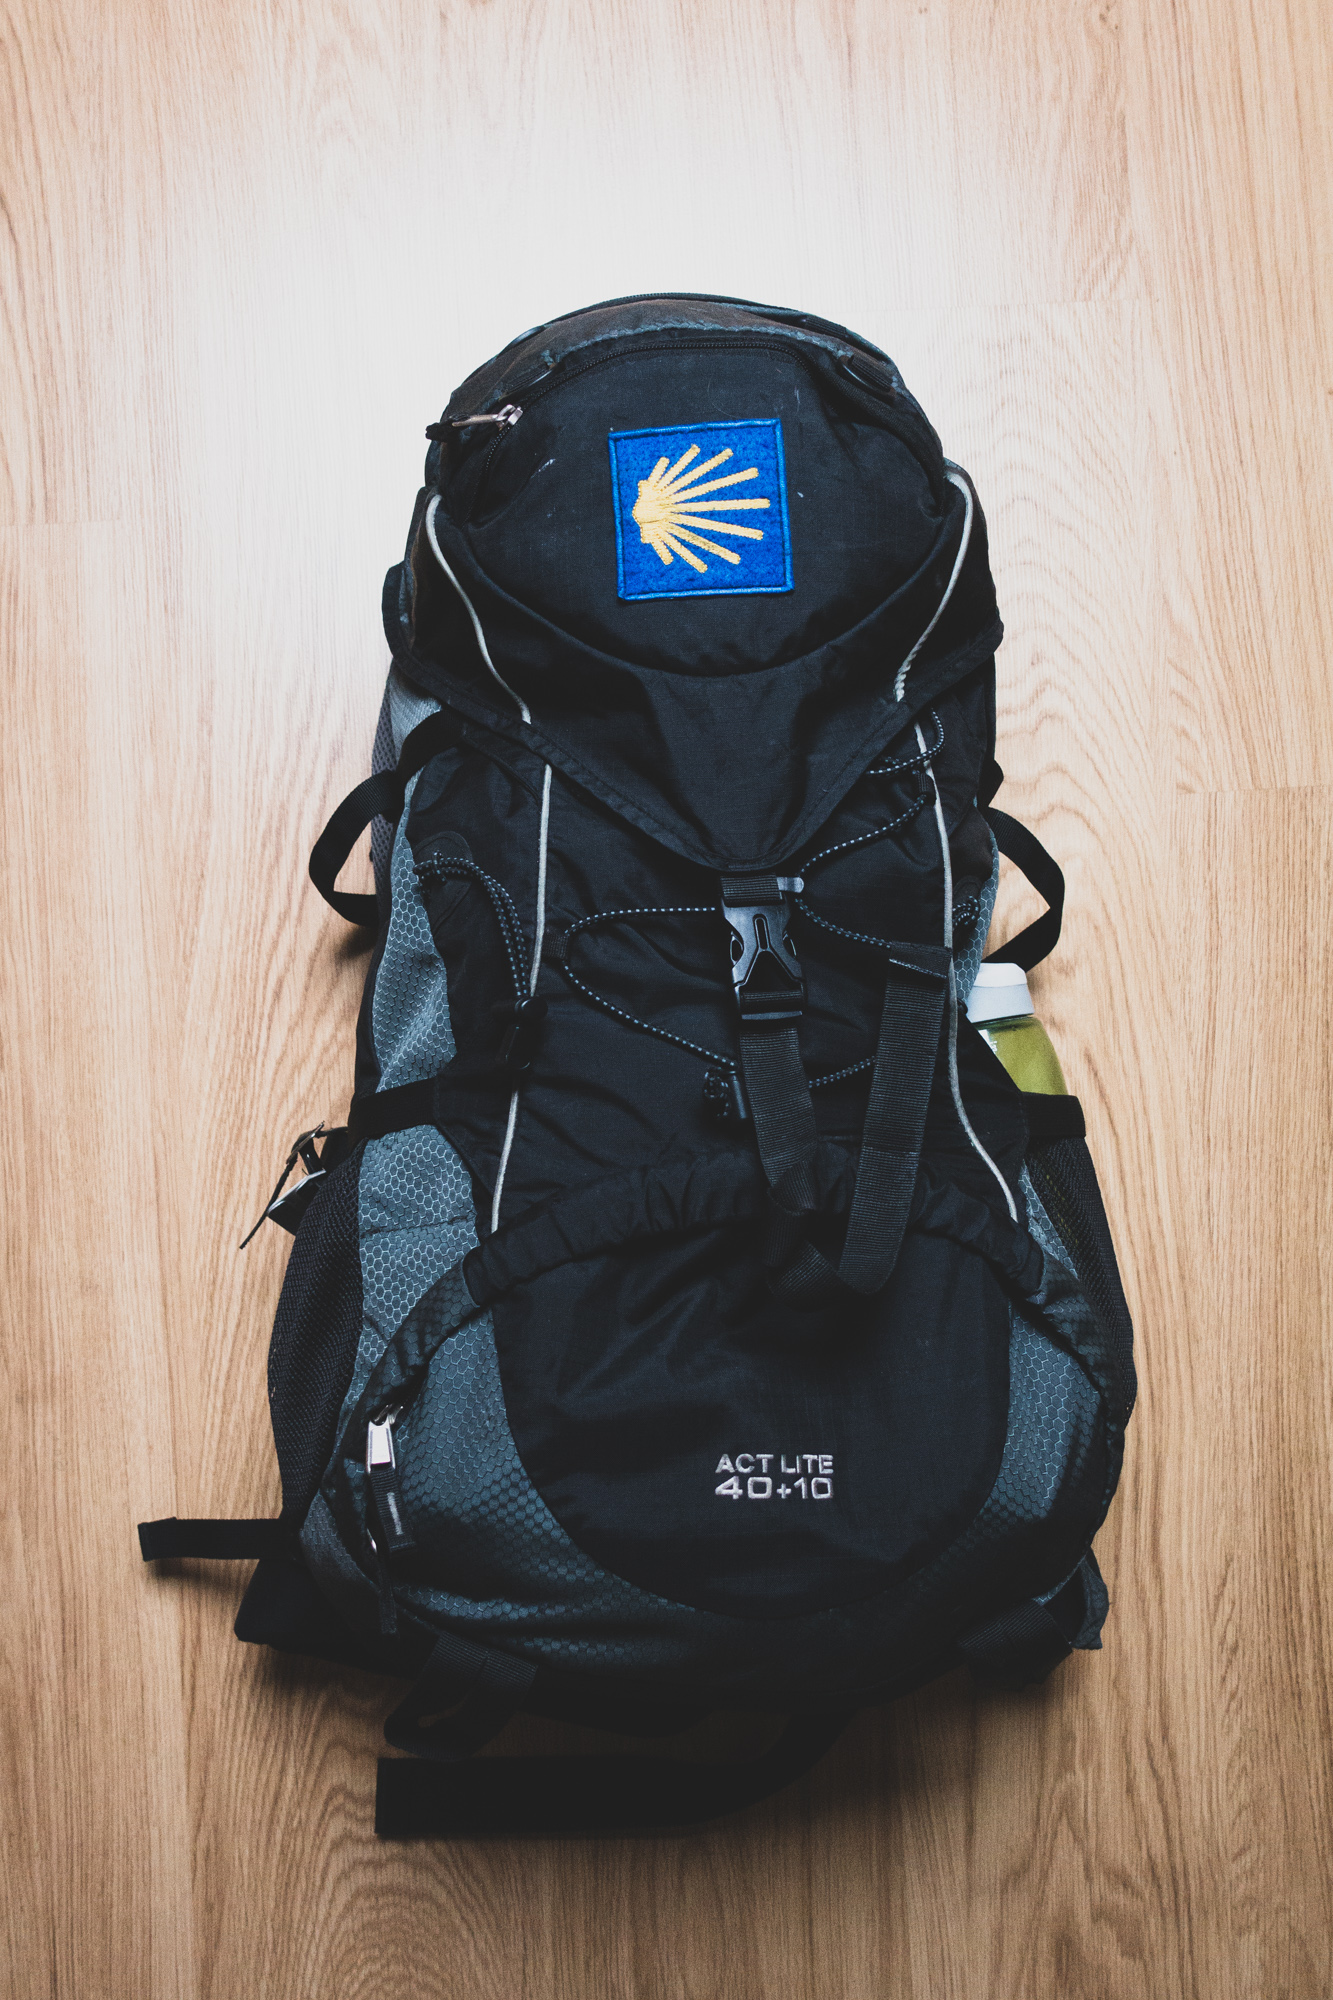 A full Deuter backpack on the floor